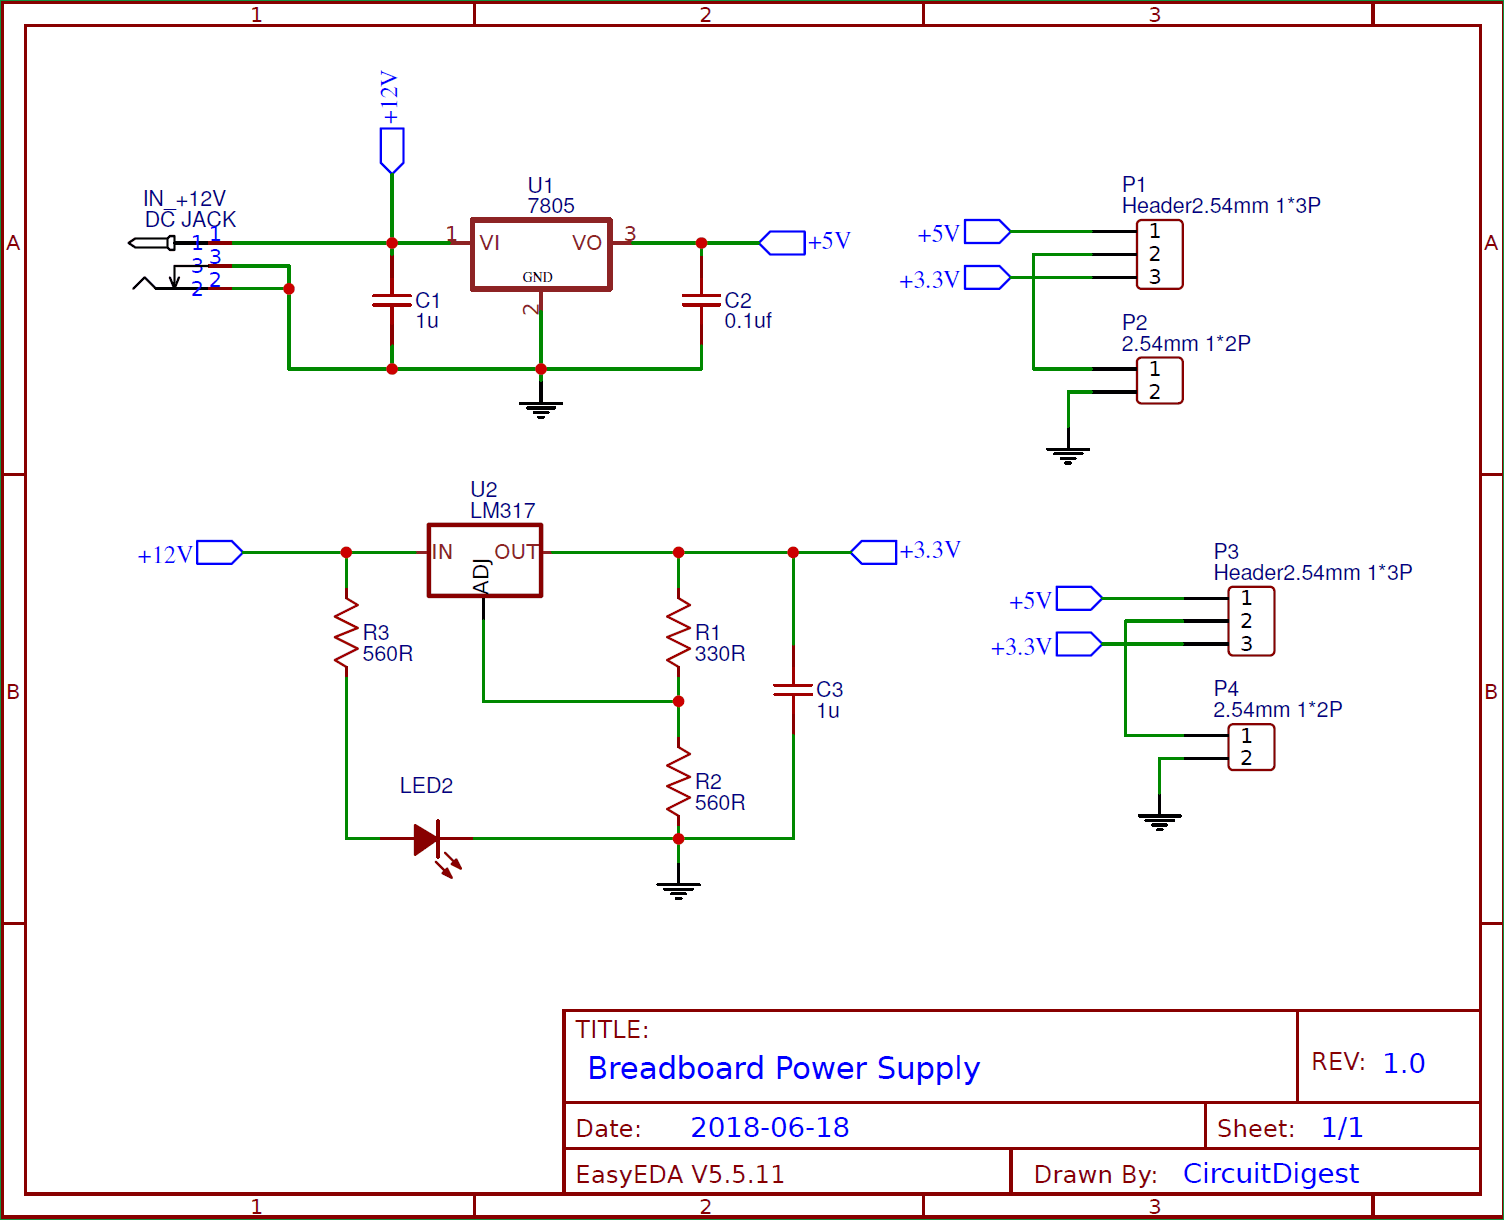 Circuit Diagram for DIY Breadboard Power Supply Circuit on PCB